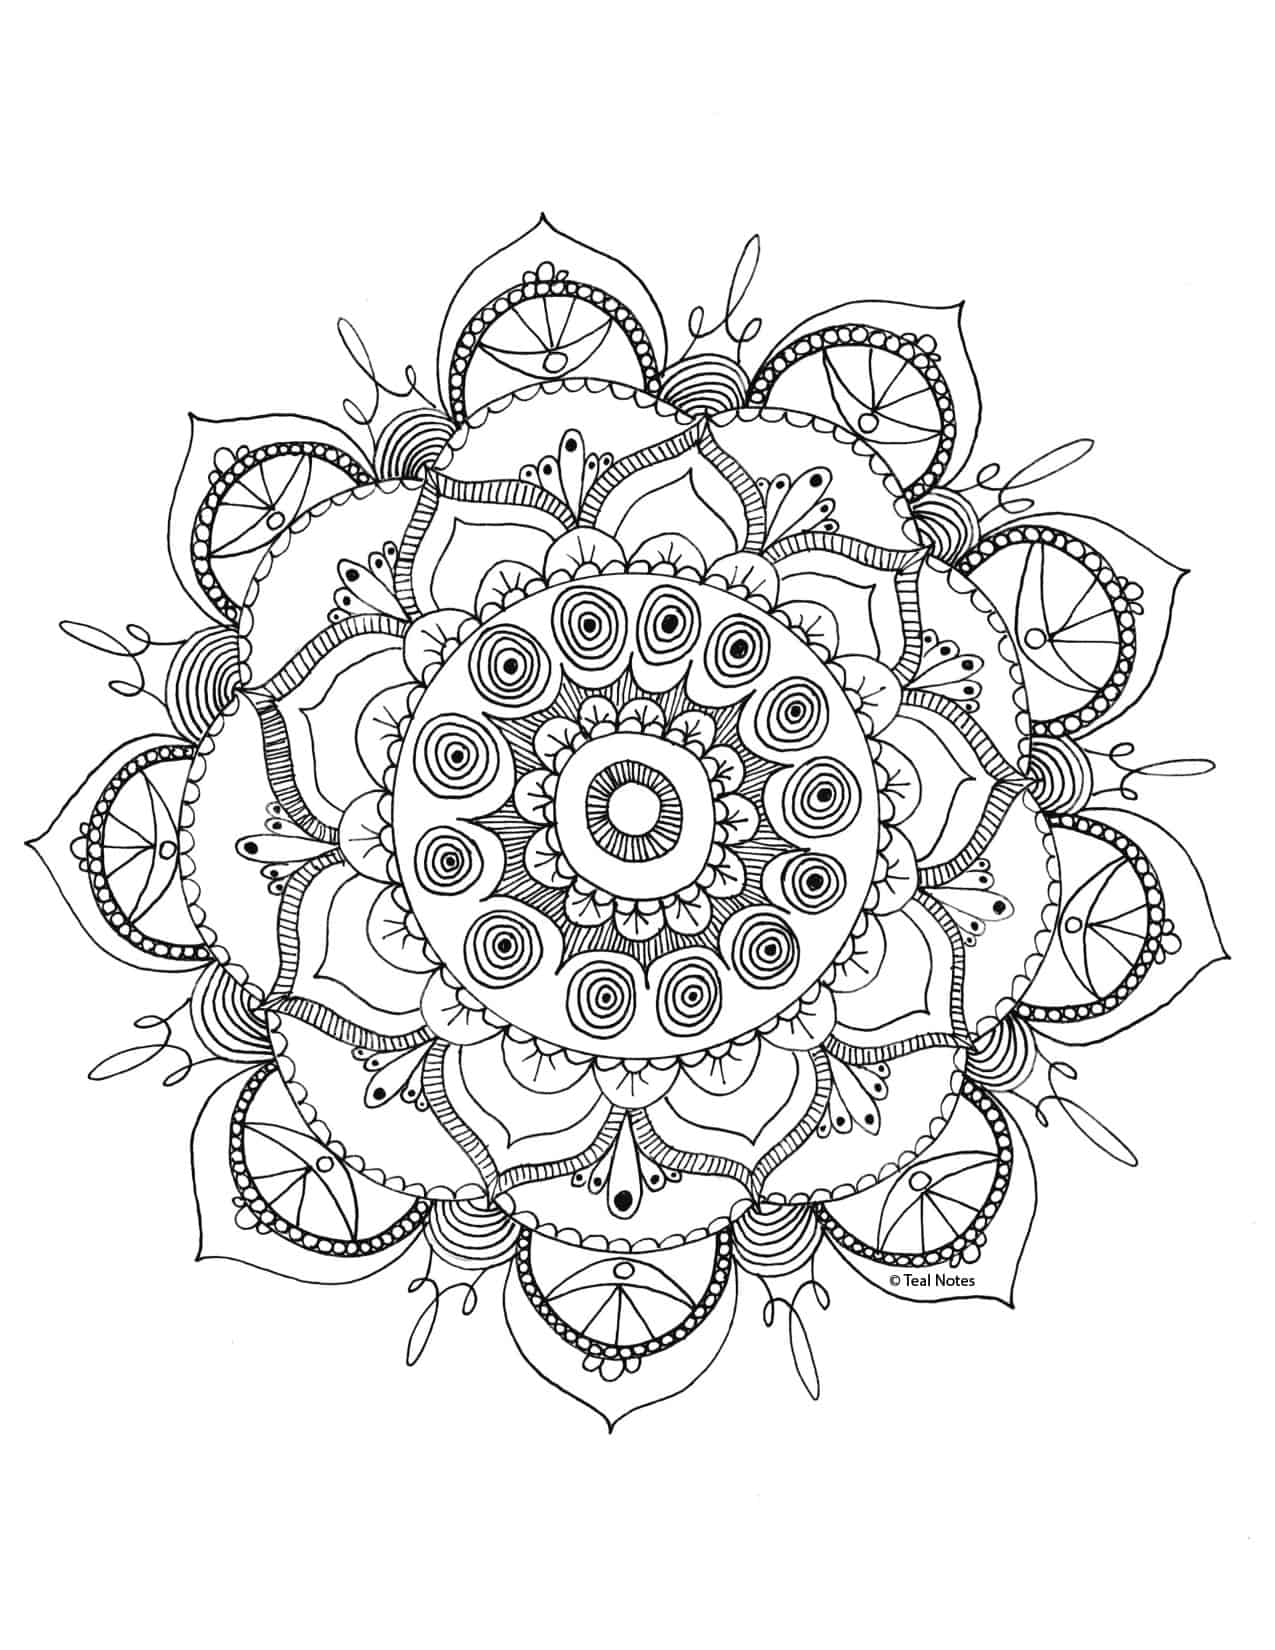 free mandala coloring page you can print and color